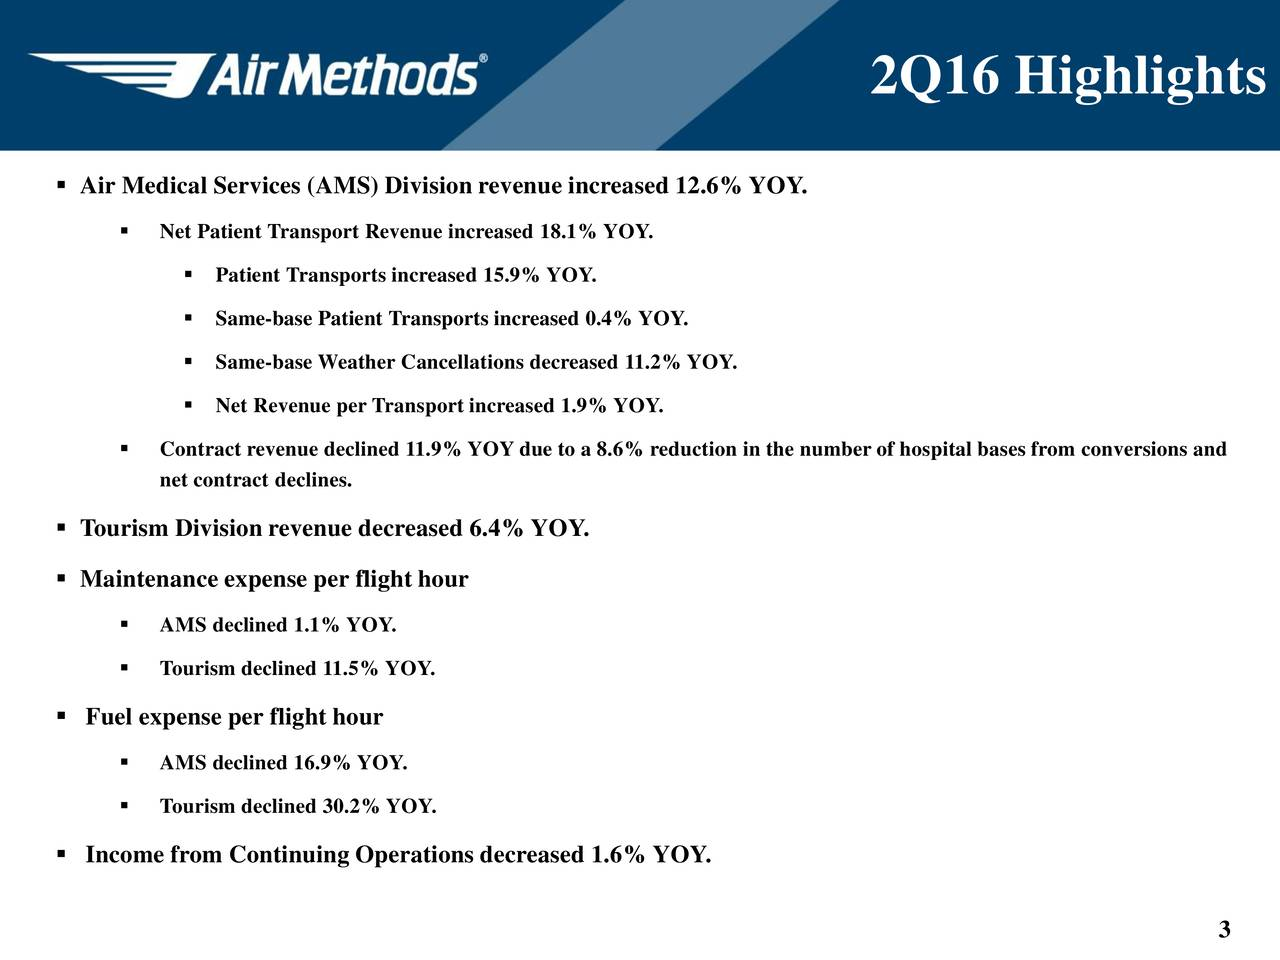 Air Medical Services (AMS) Division revenue increased 12.6%YOY. Net Patient Transport Revenue increased 18.1% YOY. Patient Transports increased 15.9% YOY. Same-base Patient Transports increased 0.4% YOY. Same-base Weather Cancellations decreased 11.2% YOY. Net Revenue per Transport increased 1.9% YOY. Contract revenue declined 11.9% YOY due to a 8.6% reduction in the number of hospital bases from conversions and net contract declines. Tourism Division revenue decreased 6.4%YOY. Maintenance expense per flight hour AMS declined 1.1% YOY. Tourism declined 11.5% YOY. Fuel expense per flight hour AMS declined 16.9% YOY. Tourism declined 30.2% YOY. Income from Continuing Operations decreased 1.6% YOY. 3